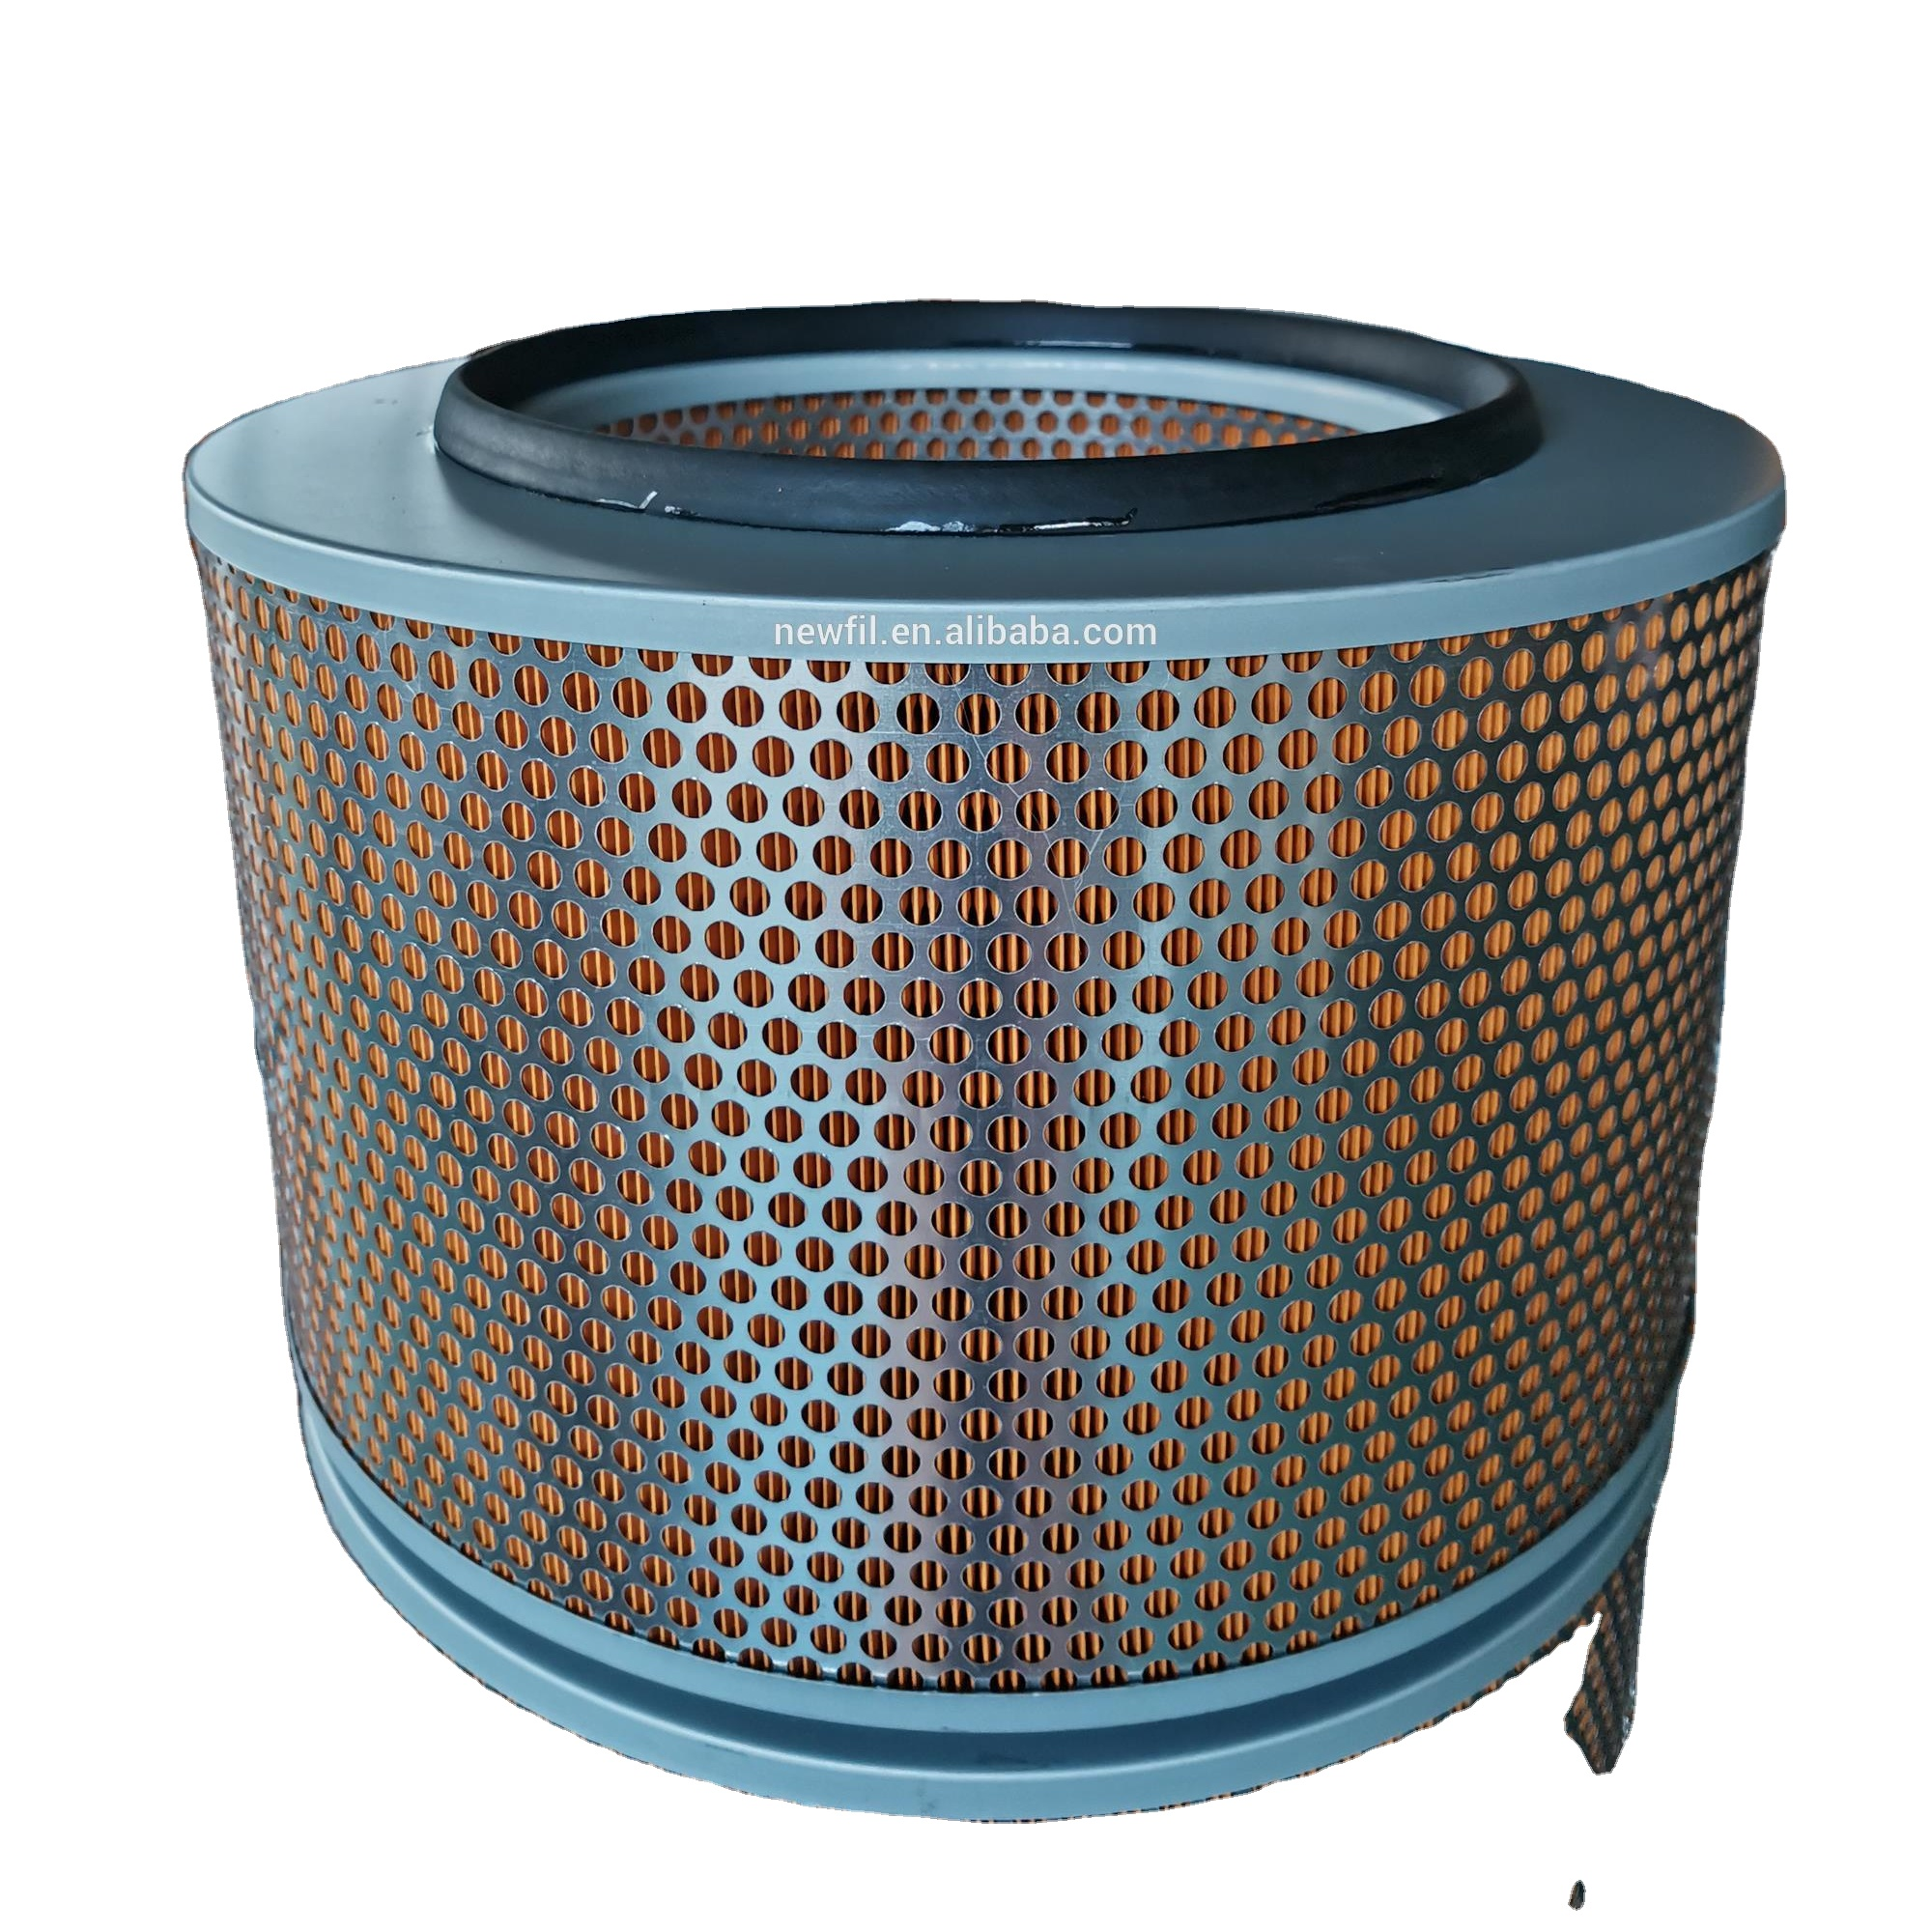 Manufacturer Truck air filter <strong>A</strong> 003 094 42 04/30944204/ AF4842/ E273L /C 33 <strong>1015</strong>